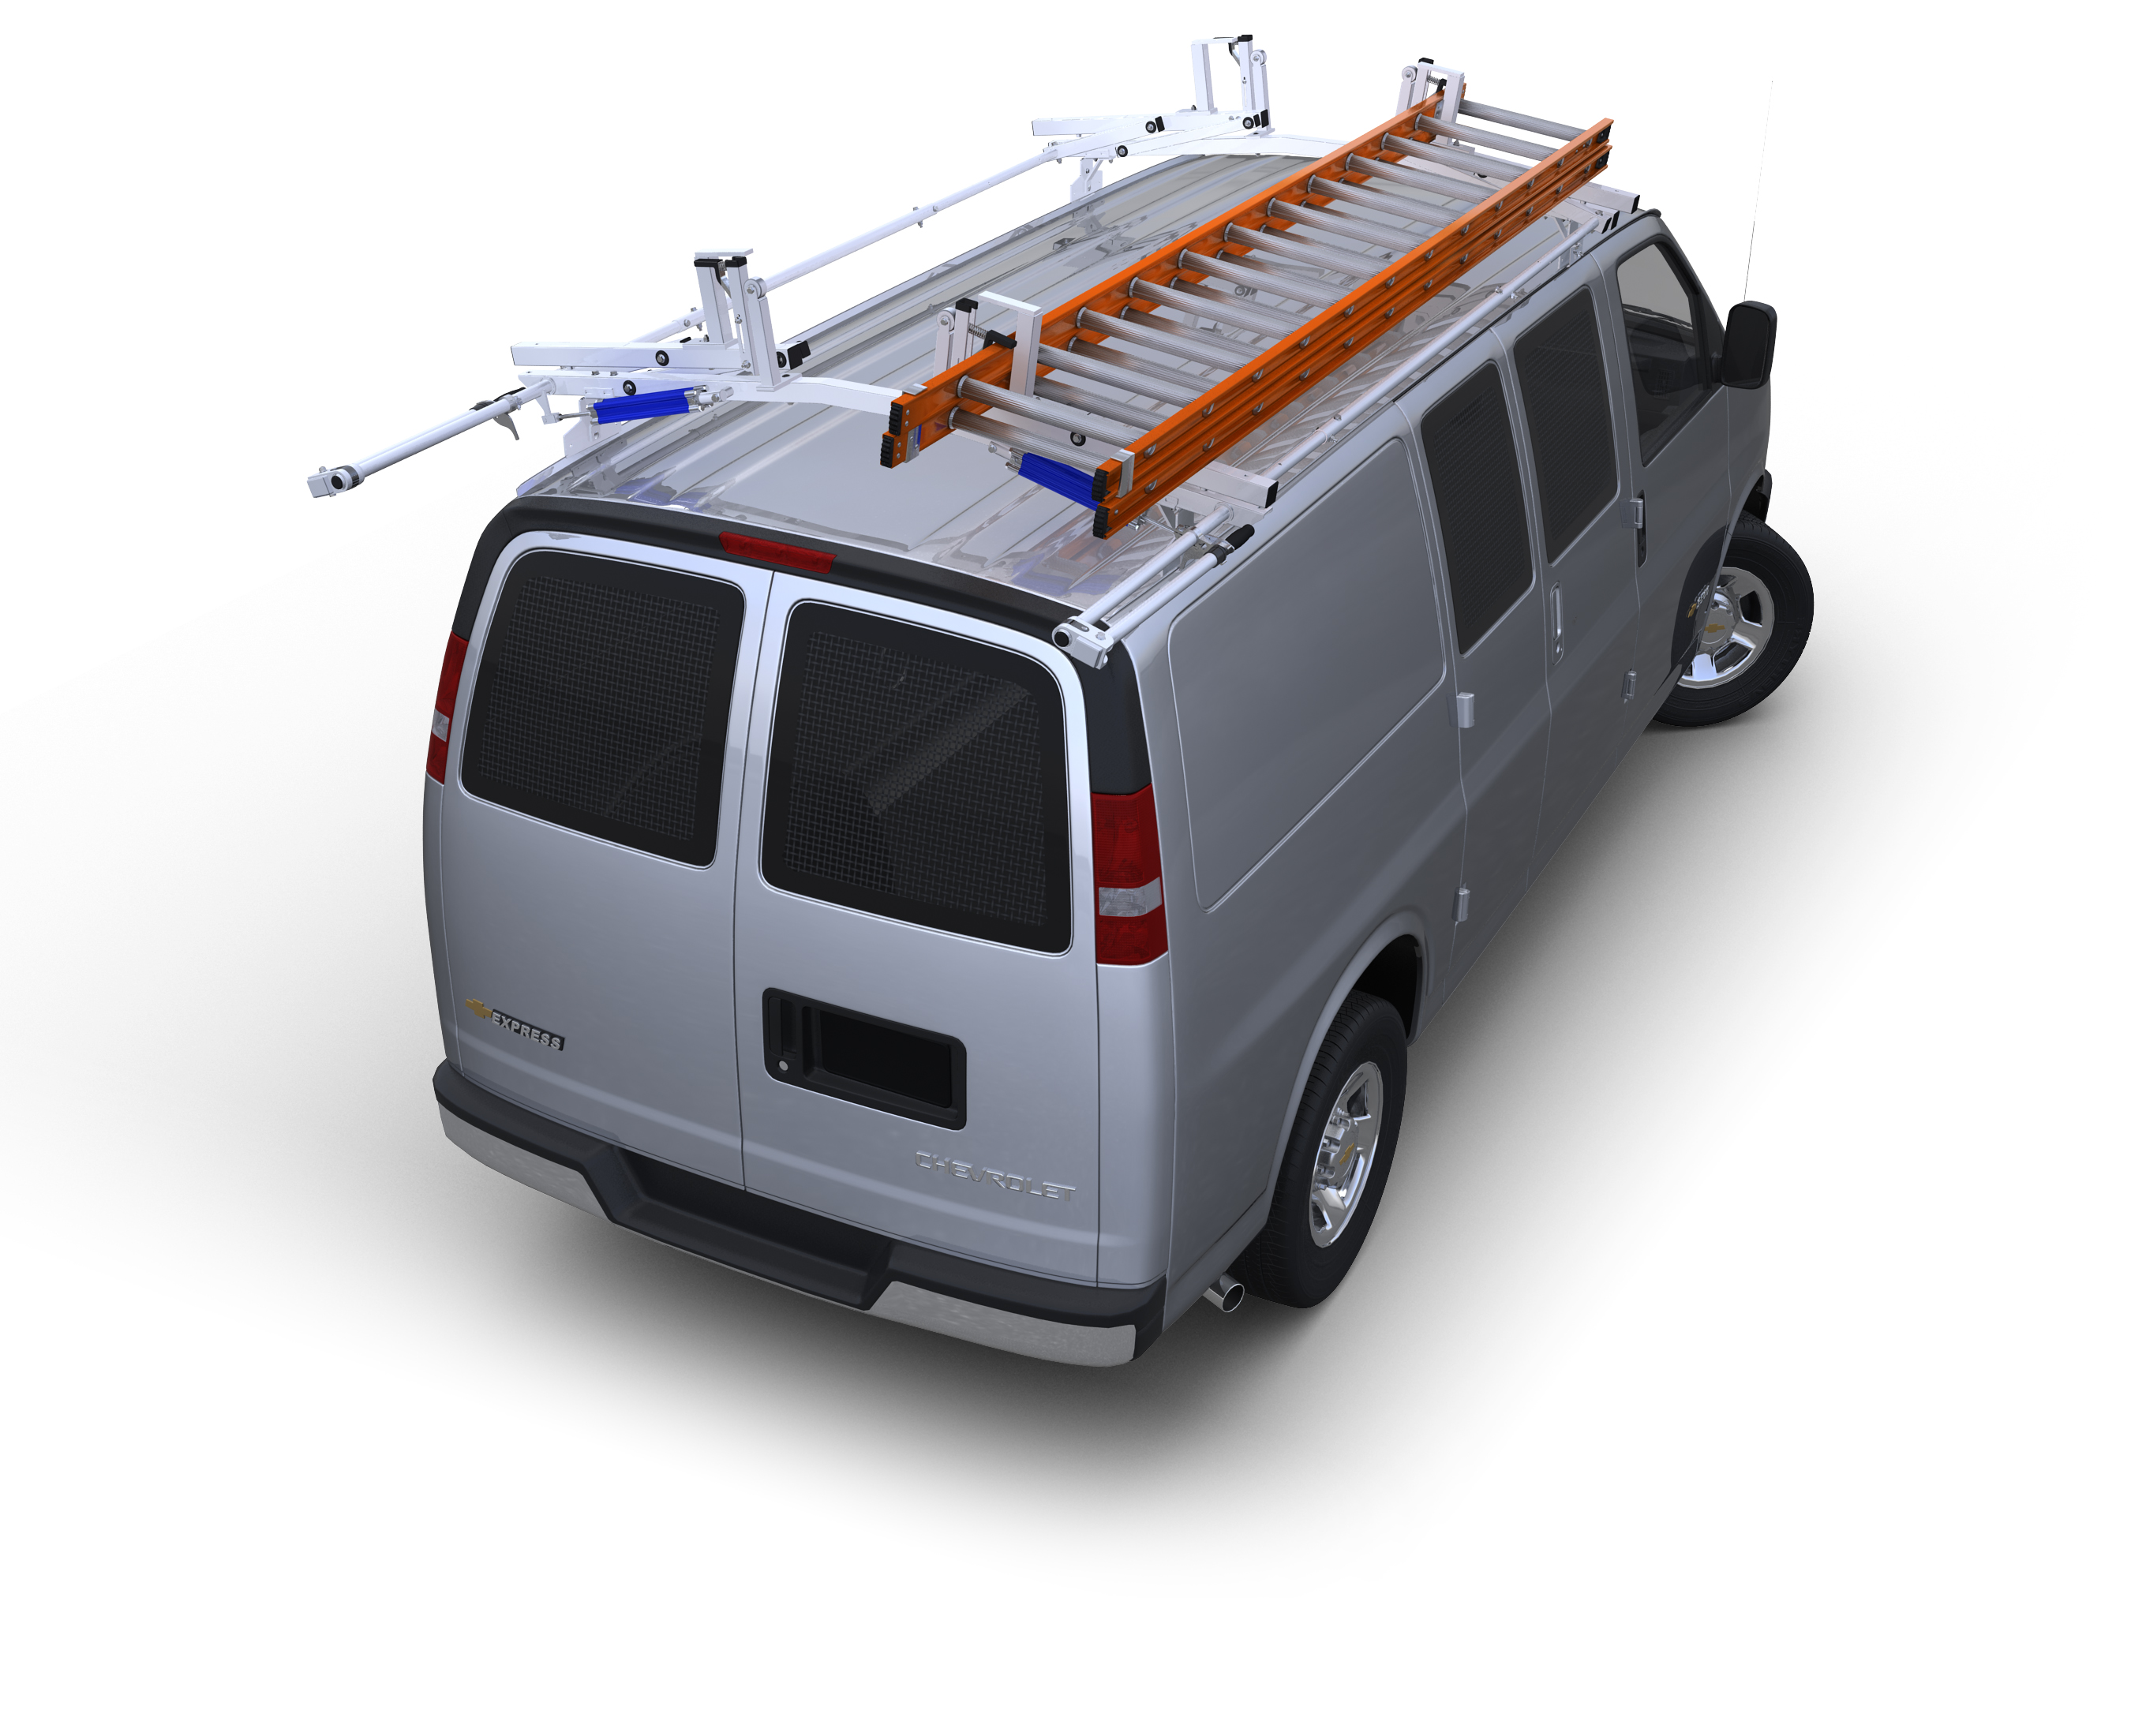 Electrical Contractor Package – Standard Wheelbase - SAVE $175!